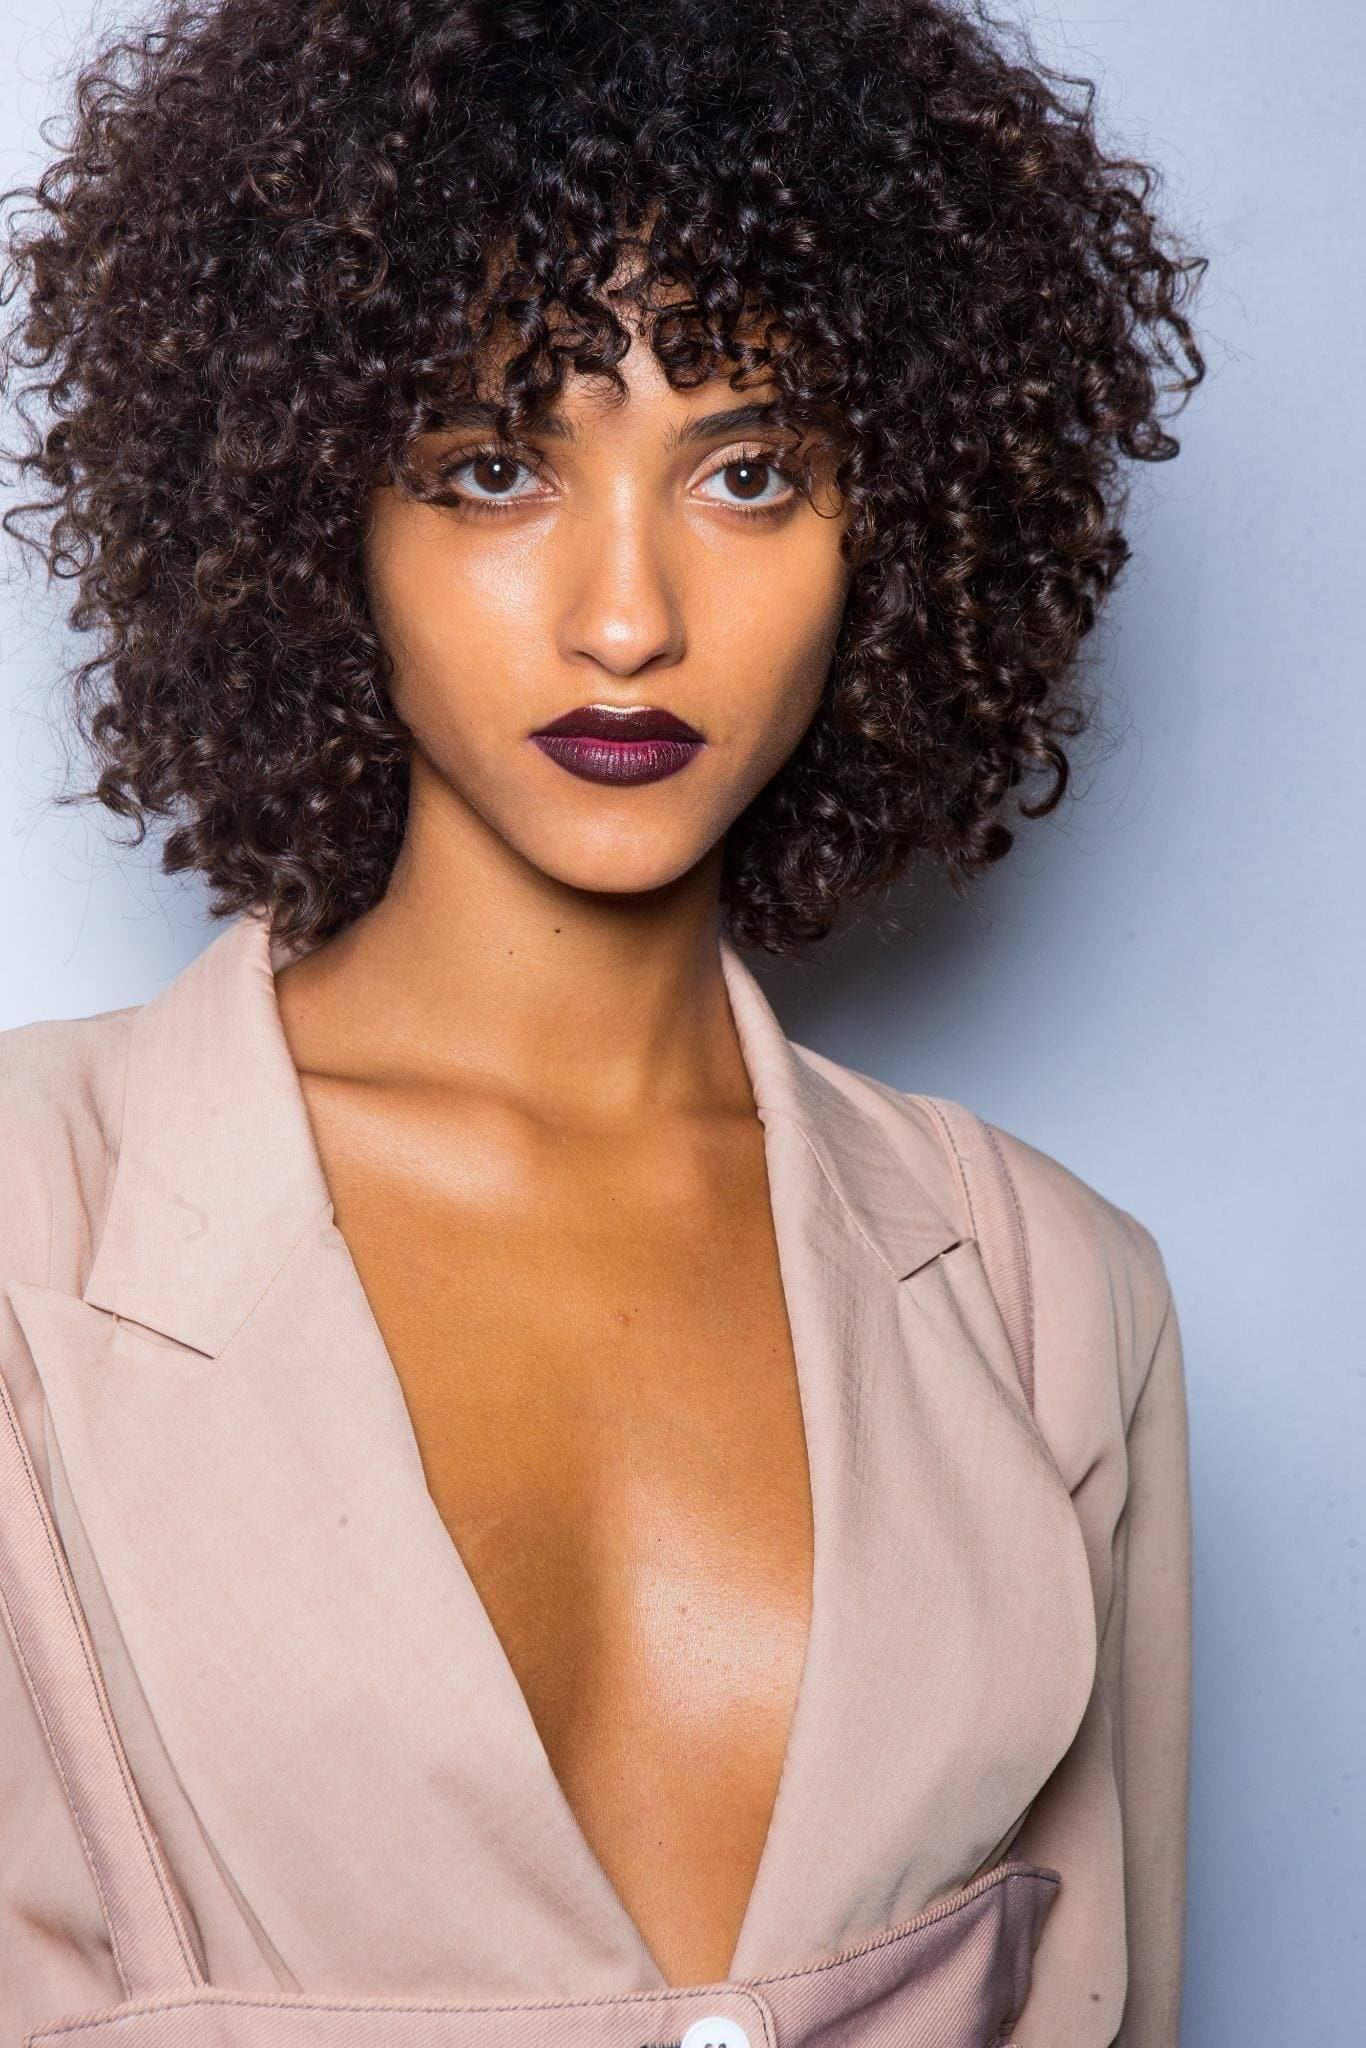 curly hair type quiz: backstage shot of model with curly hair, wearing suit and dark lipstick